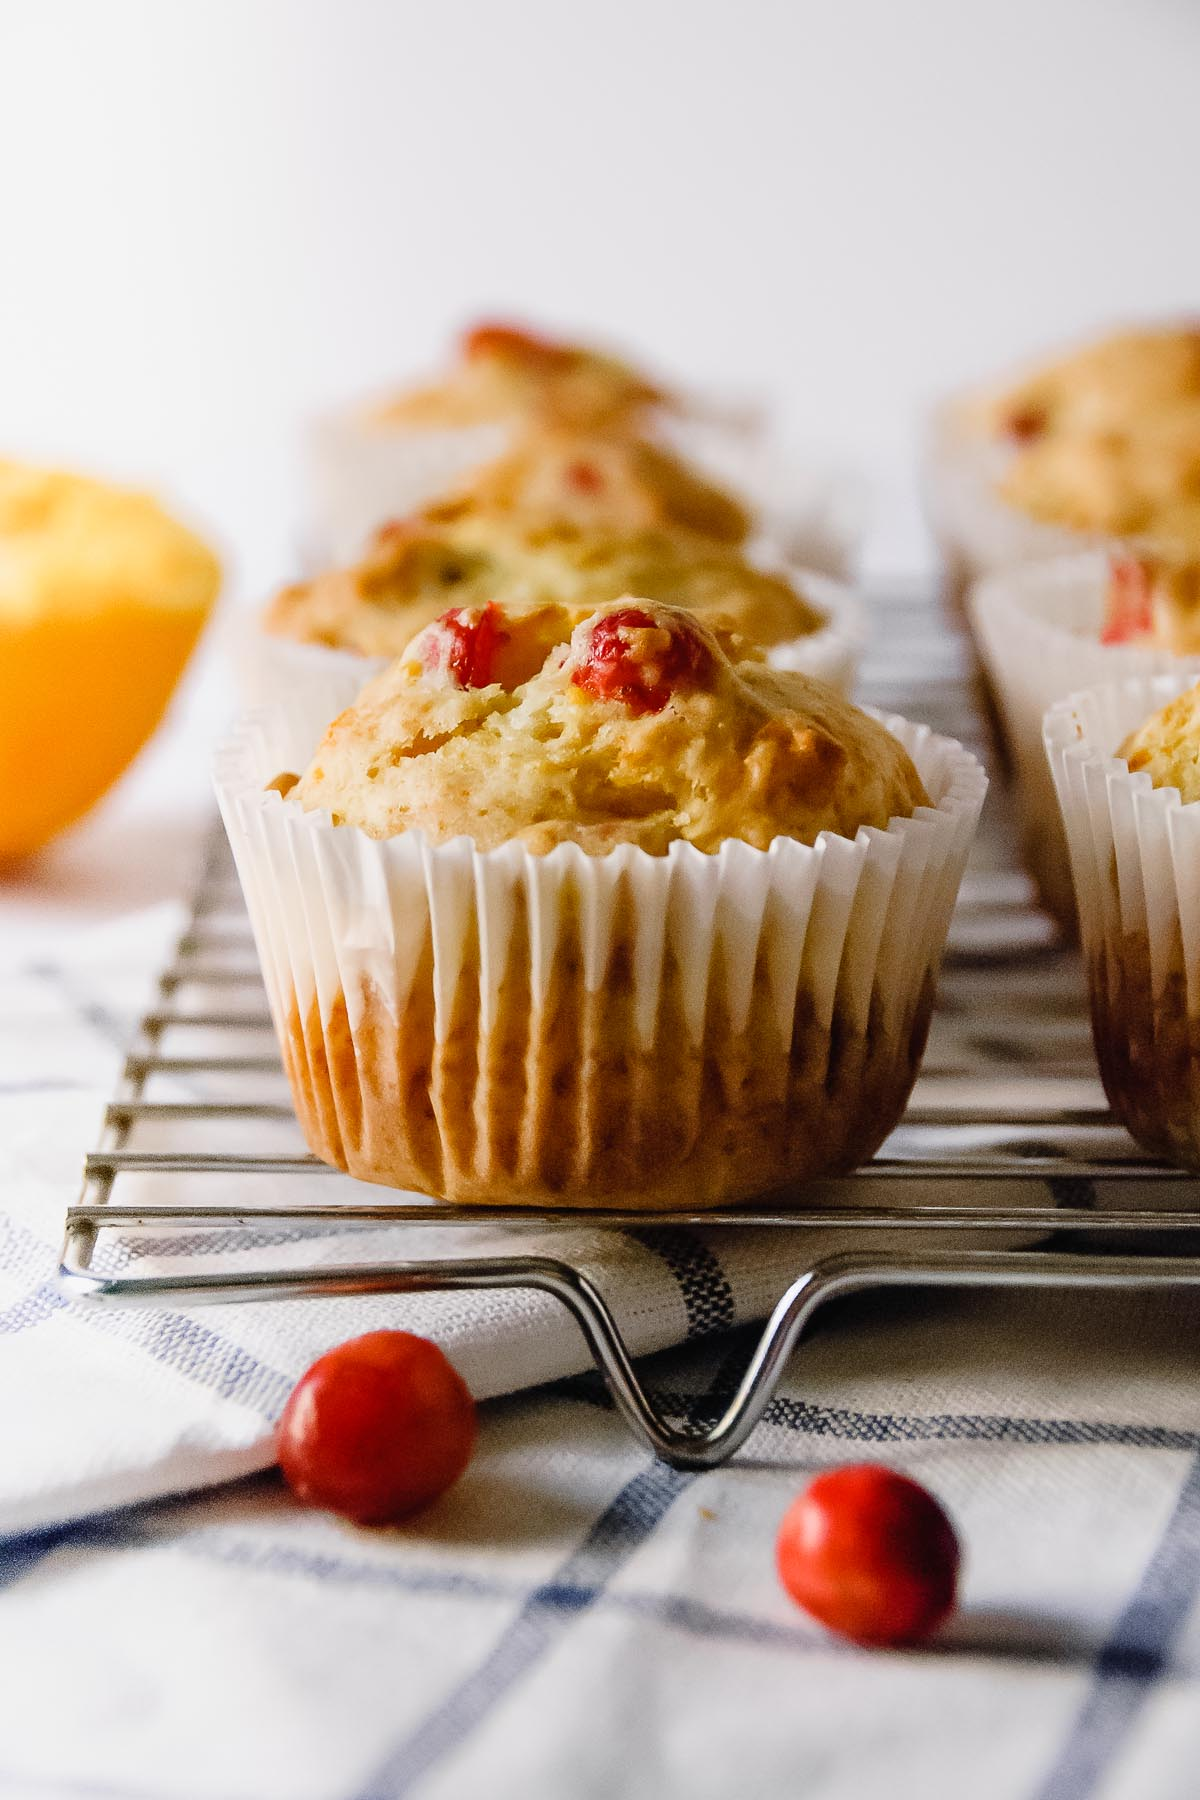 Tart, citrusy, and not too sweet… these No Fuss Cranberry Orange Muffins are the perfect seasonal make-ahead breakfast or snack that will keep you going through the Thanksgiving season all the way to Christmas! - thebeaderchef.com #cranberries #orange #muffins #christmasbreakfast #thanksgivingbreakfast #breakfast #snack #christmas #thanksgiving